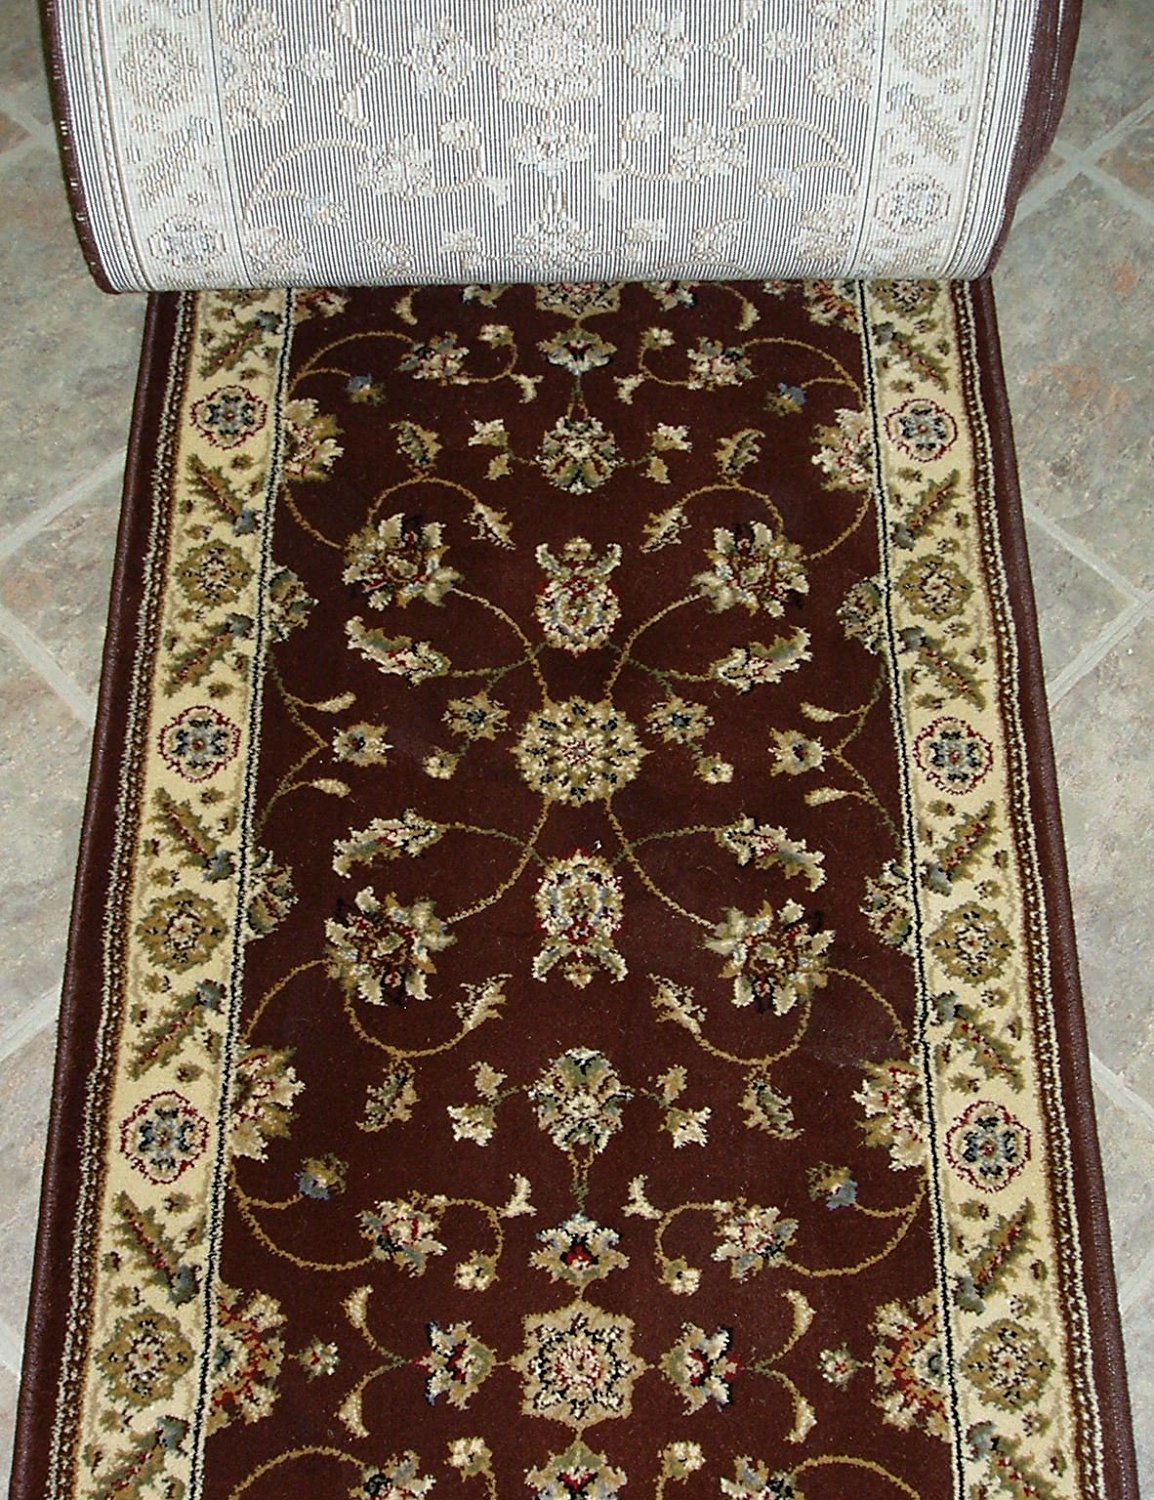 Cheap Natco Chateaux Area Rug Find Natco Chateaux Area